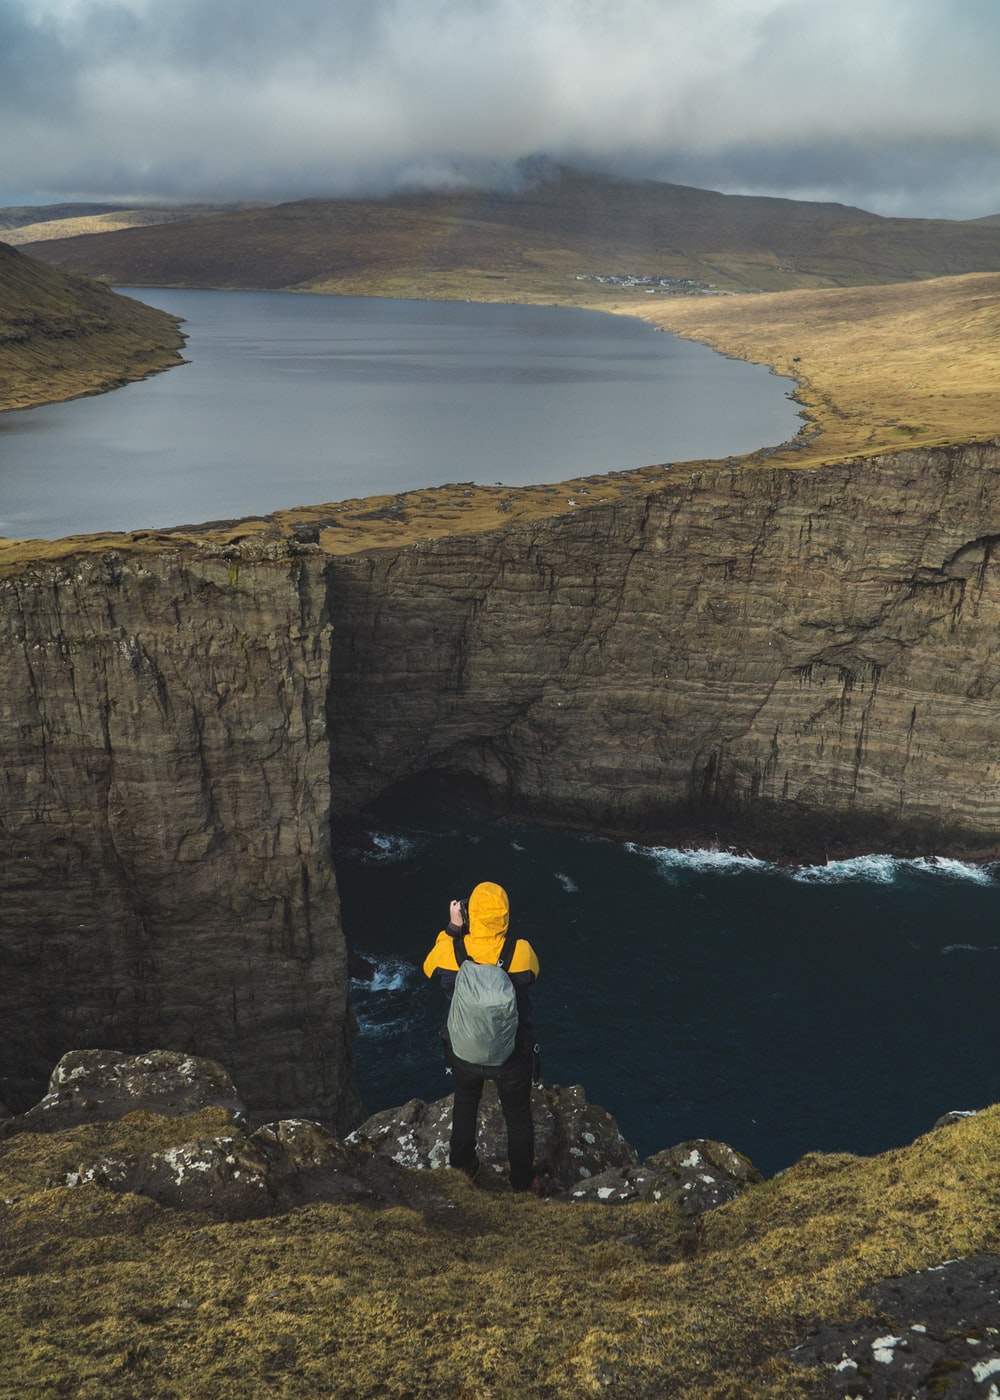 man standing on the edge of the cliff